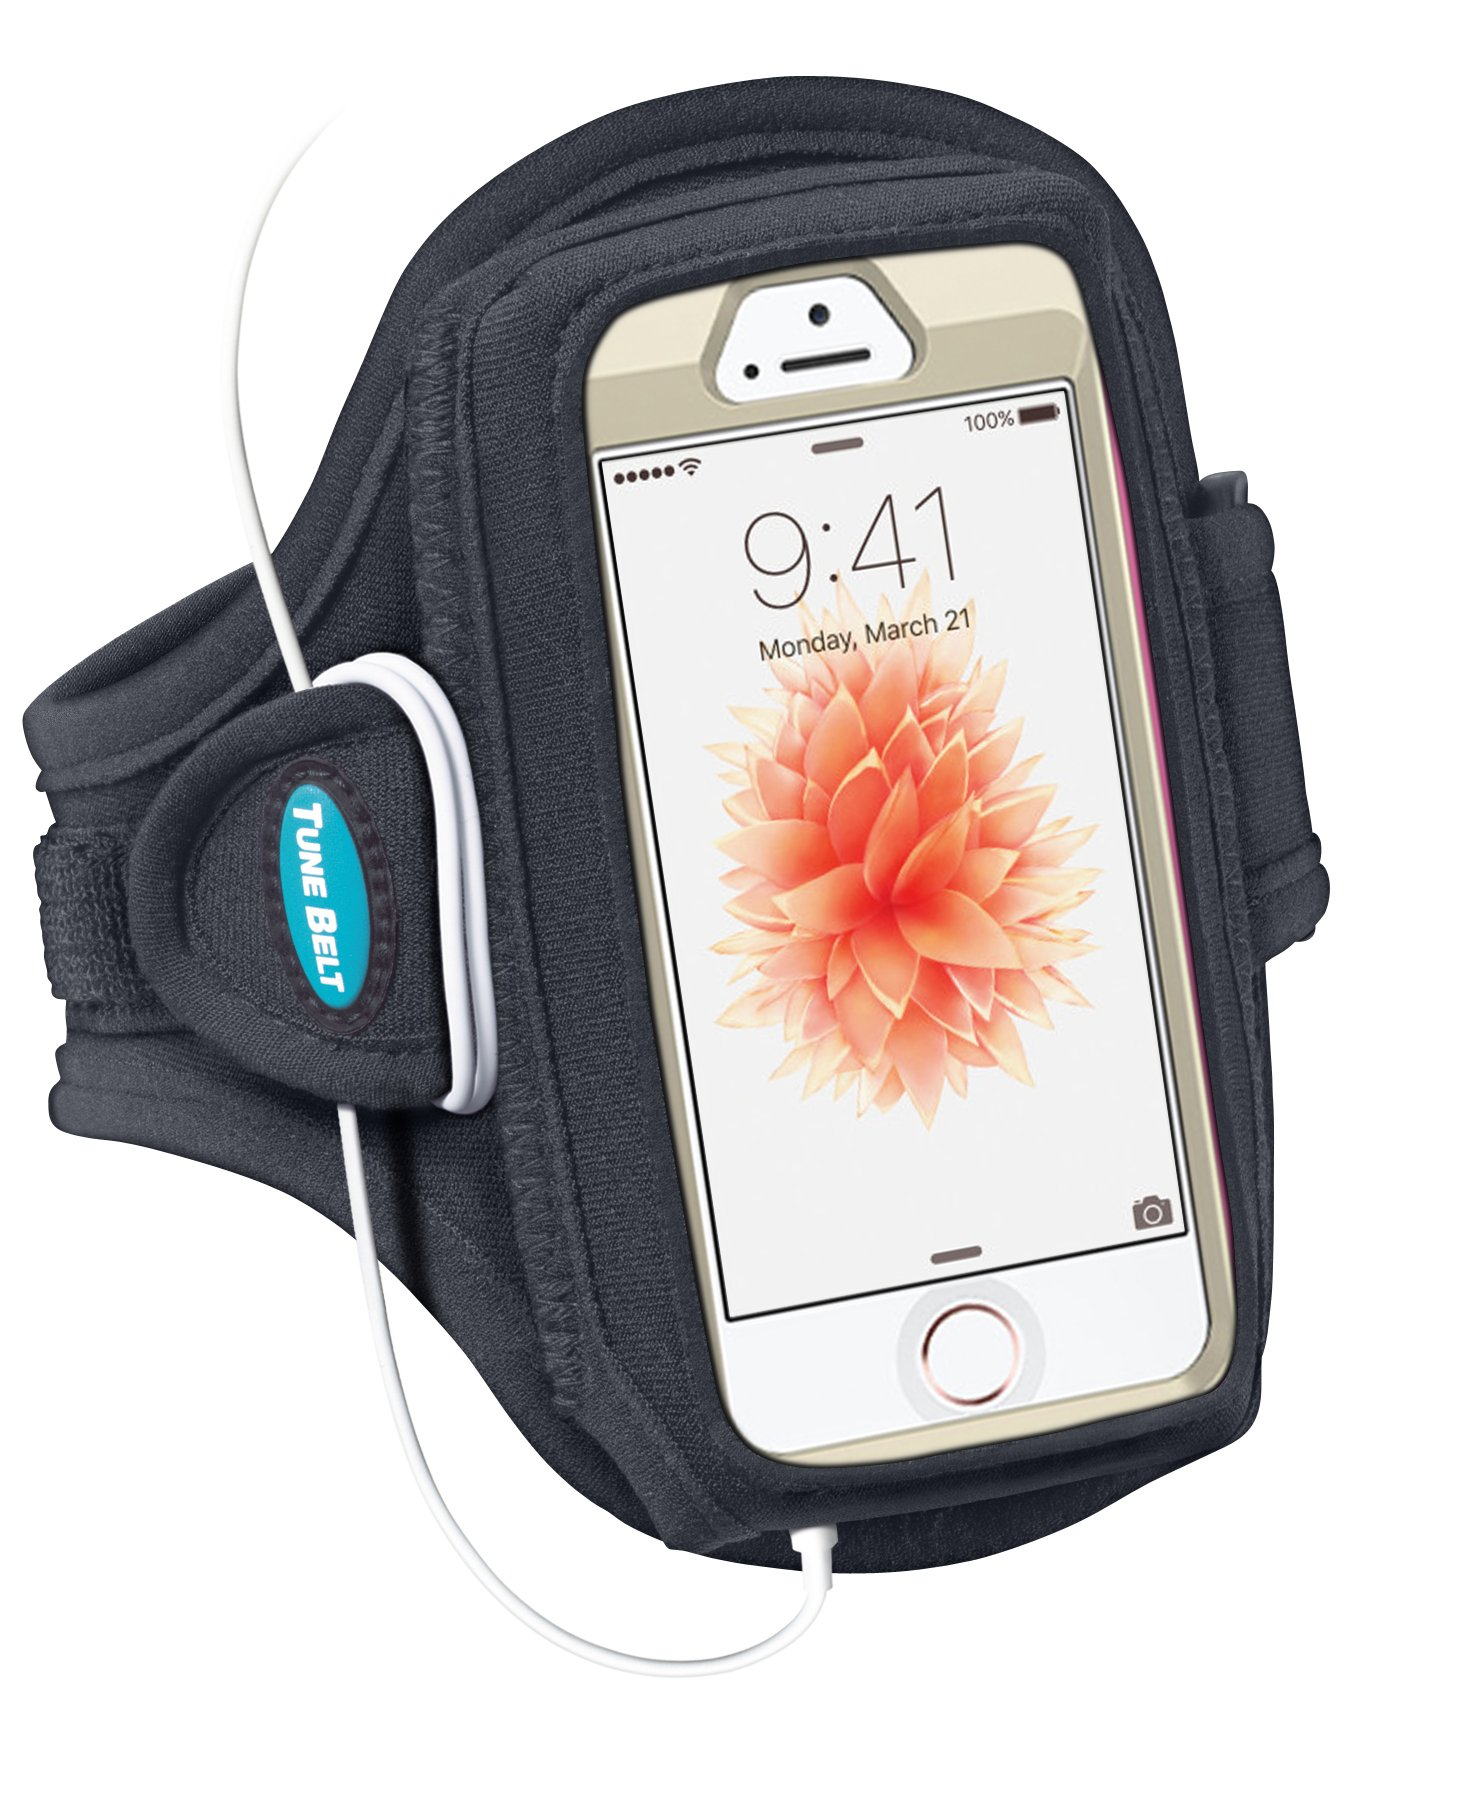 Tune Belt Armband for iPhone SE 5s 5 5c 4S 4 Fits with OtterBox Defender, Commuter or Other Large Case - for Running & Working Out - Sweat-Resistant [Black] by Tune Belt